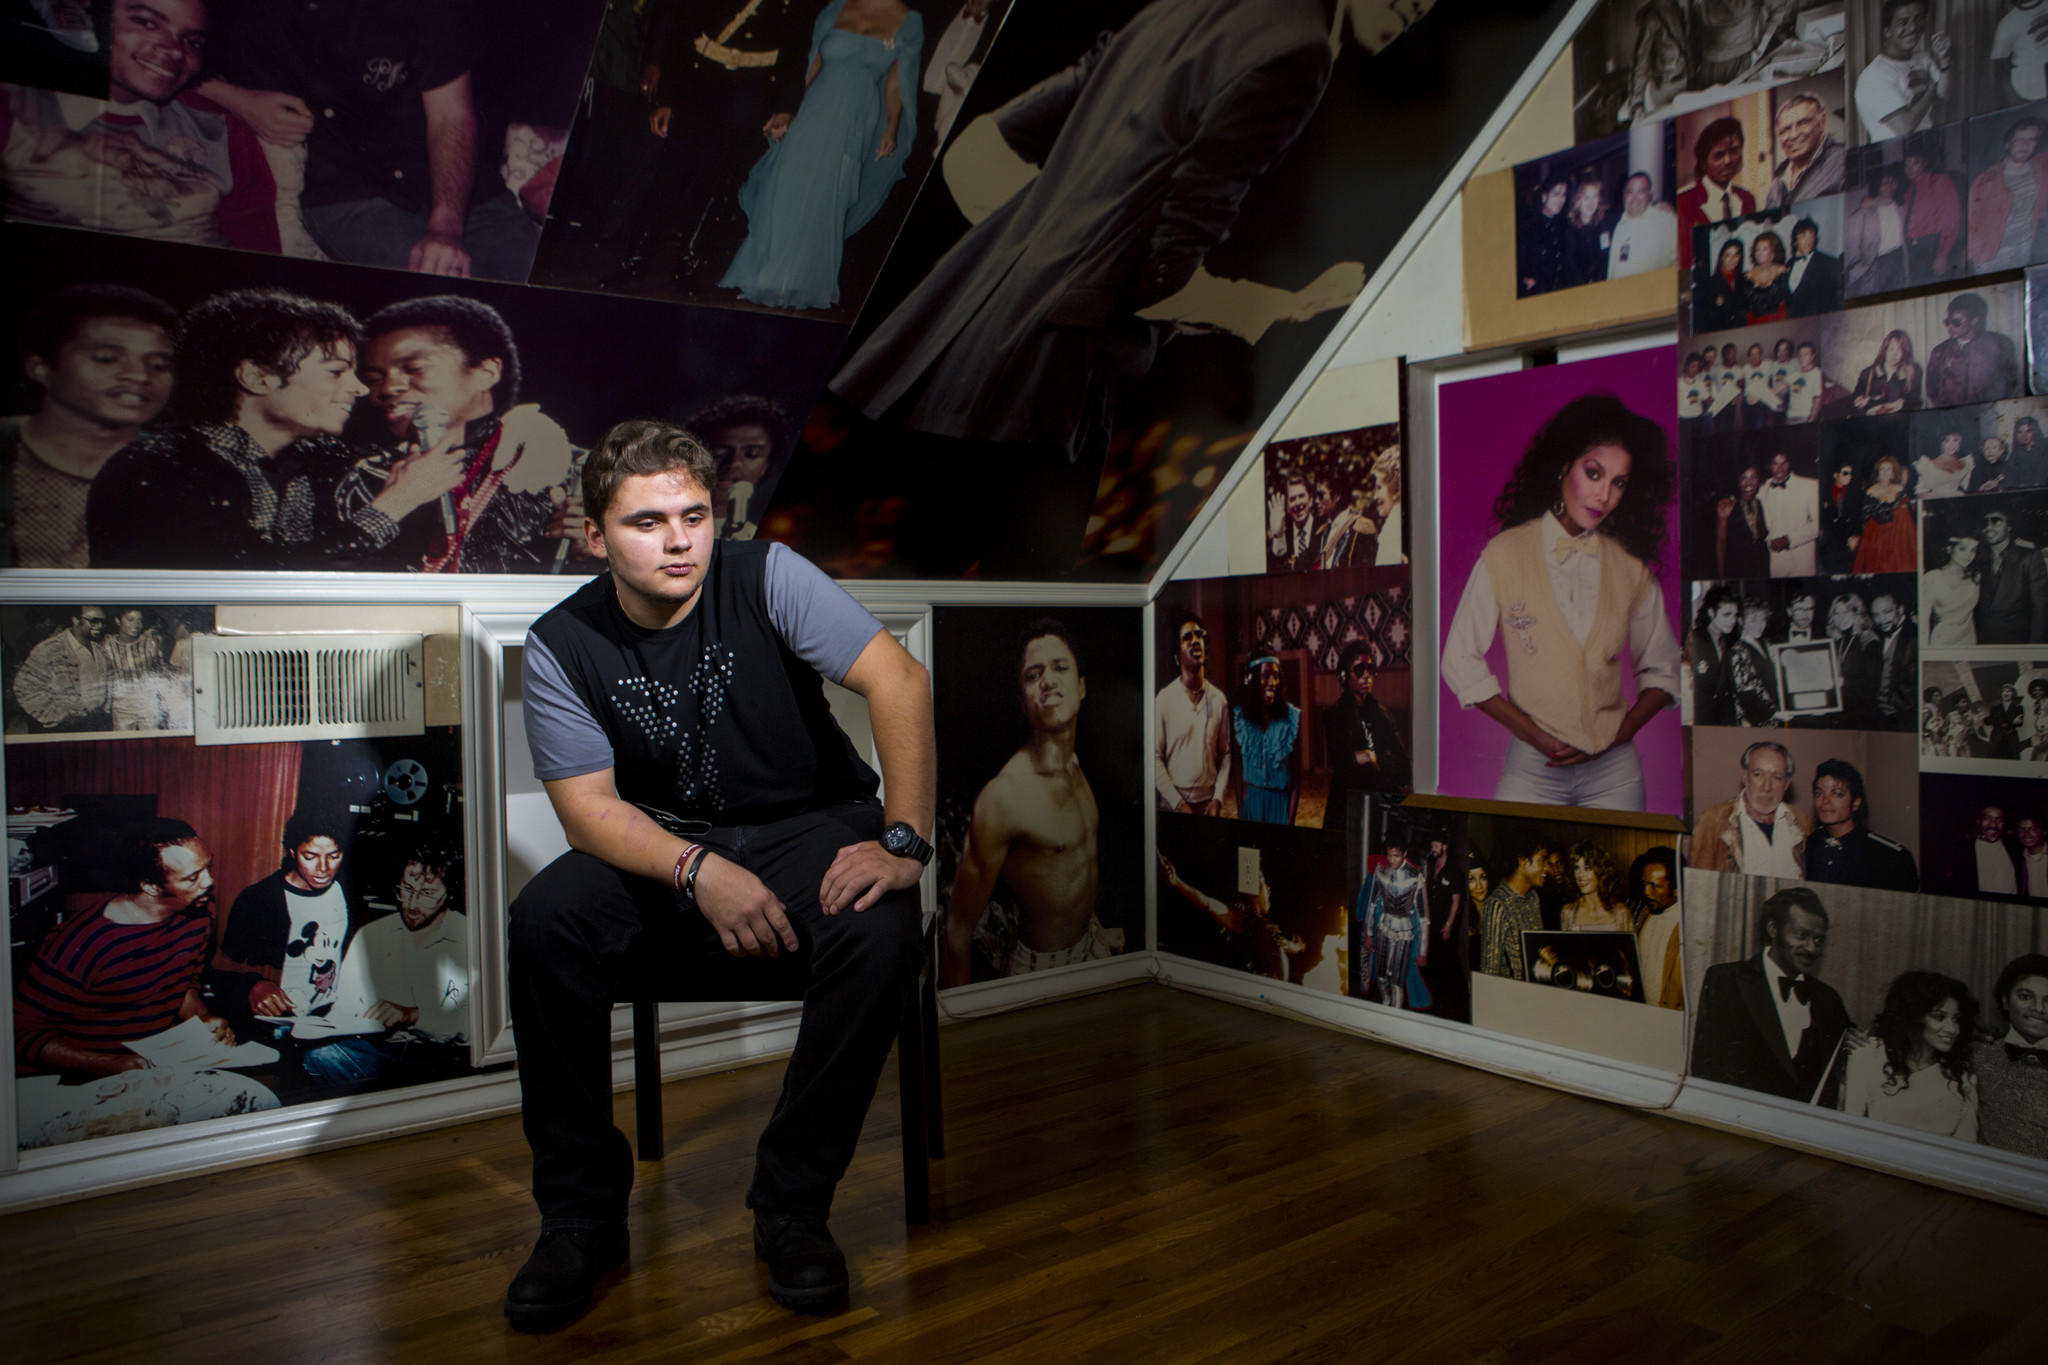 Prince Jackson concede un'intervista a Los Angeles Times  La-1470252606-snap-photo